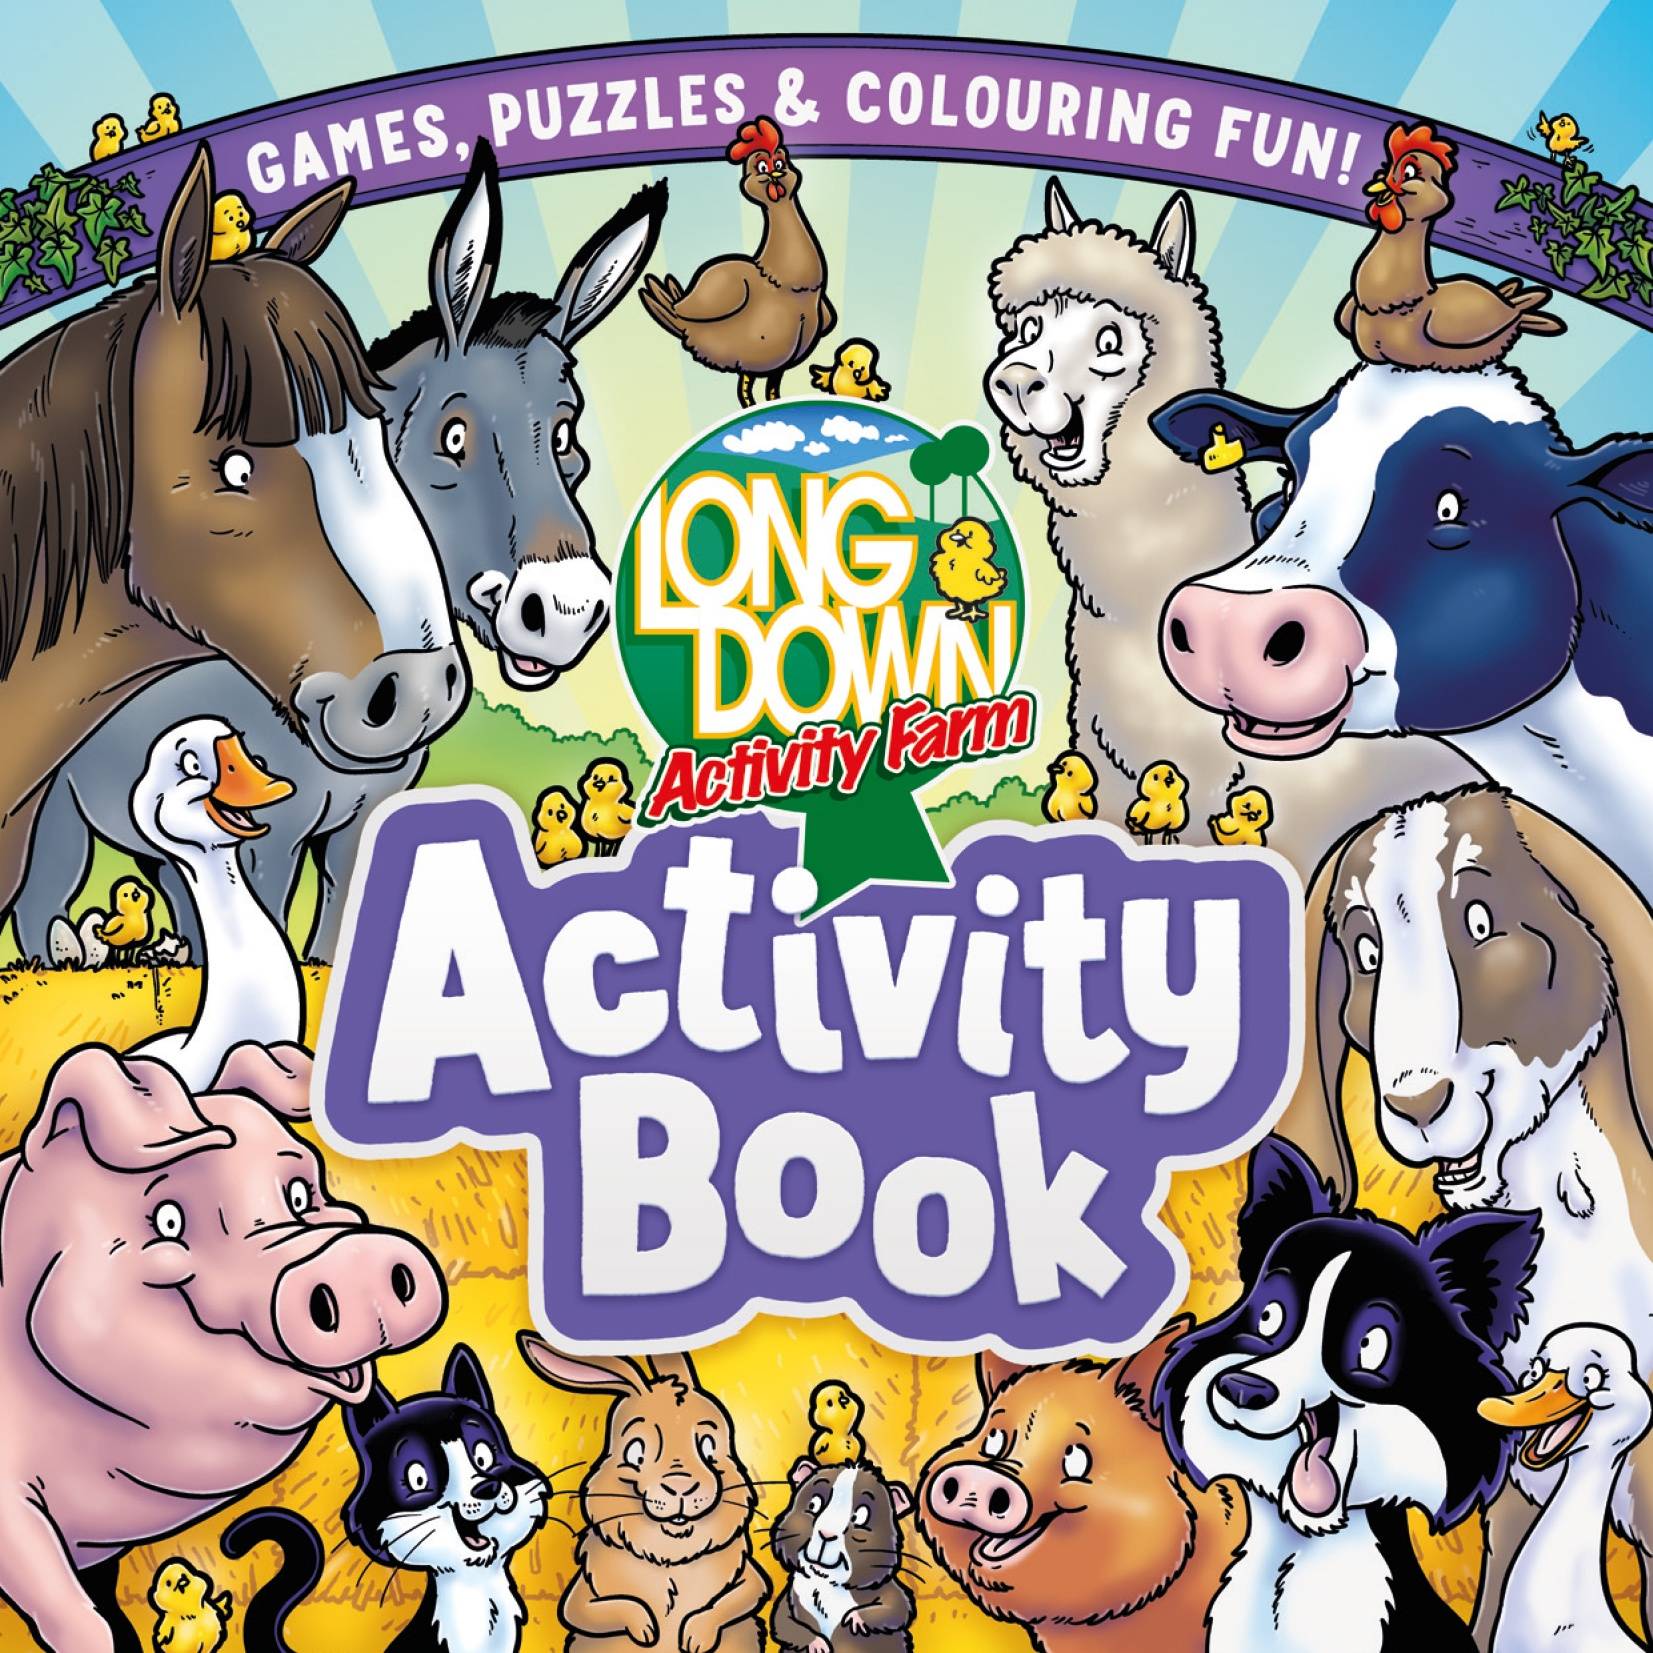 The Longdown Activity Farm Activity Book